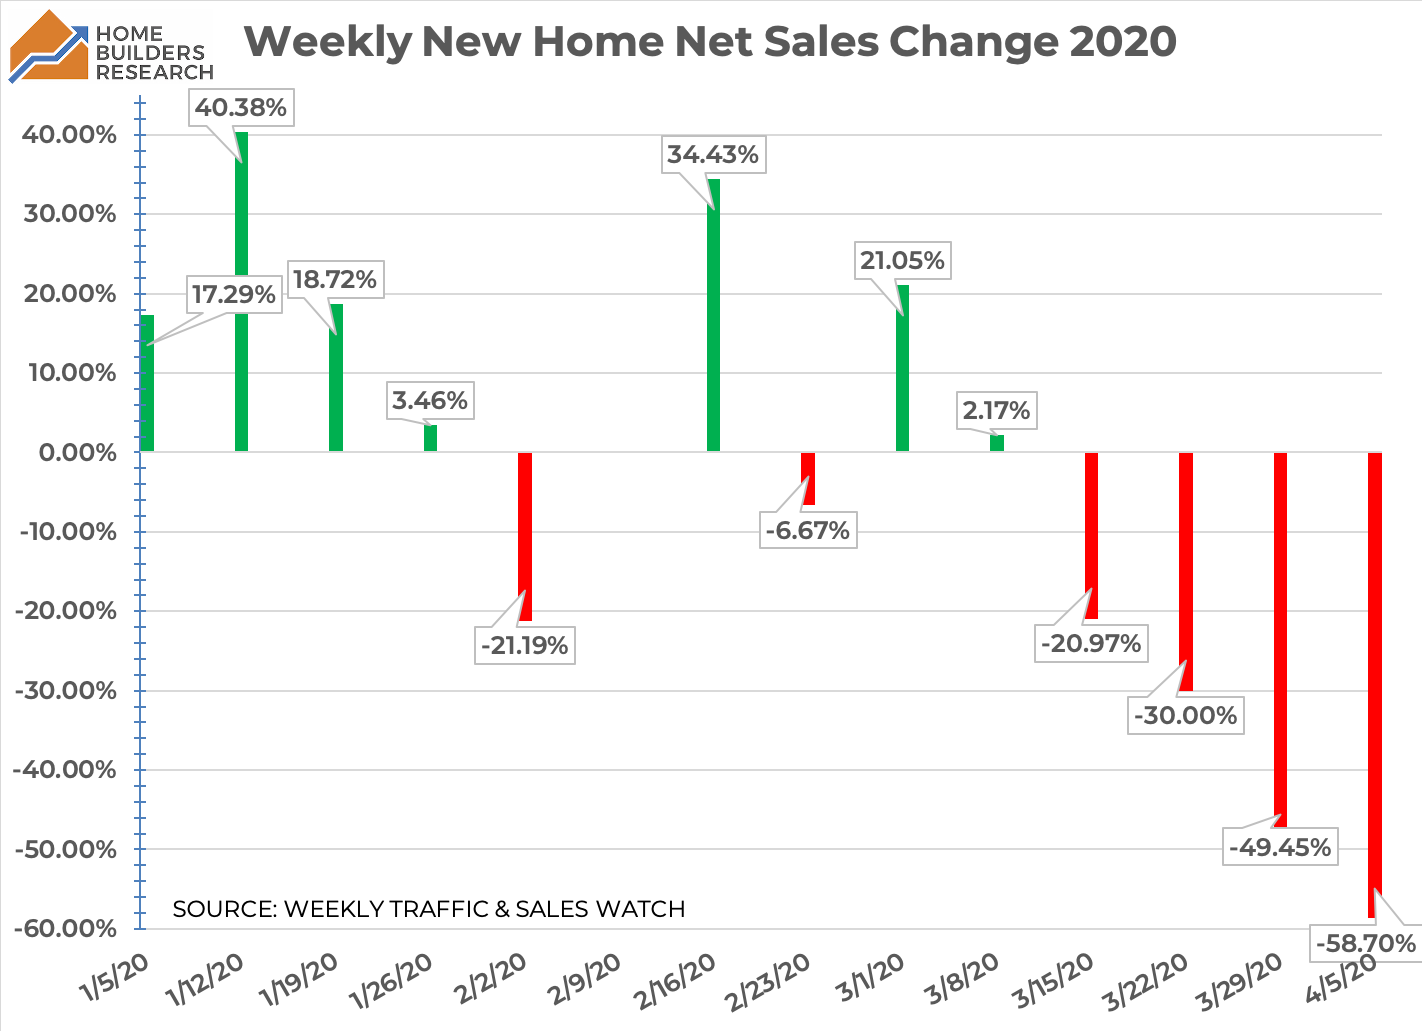 Weekly Net Sales Change 2020